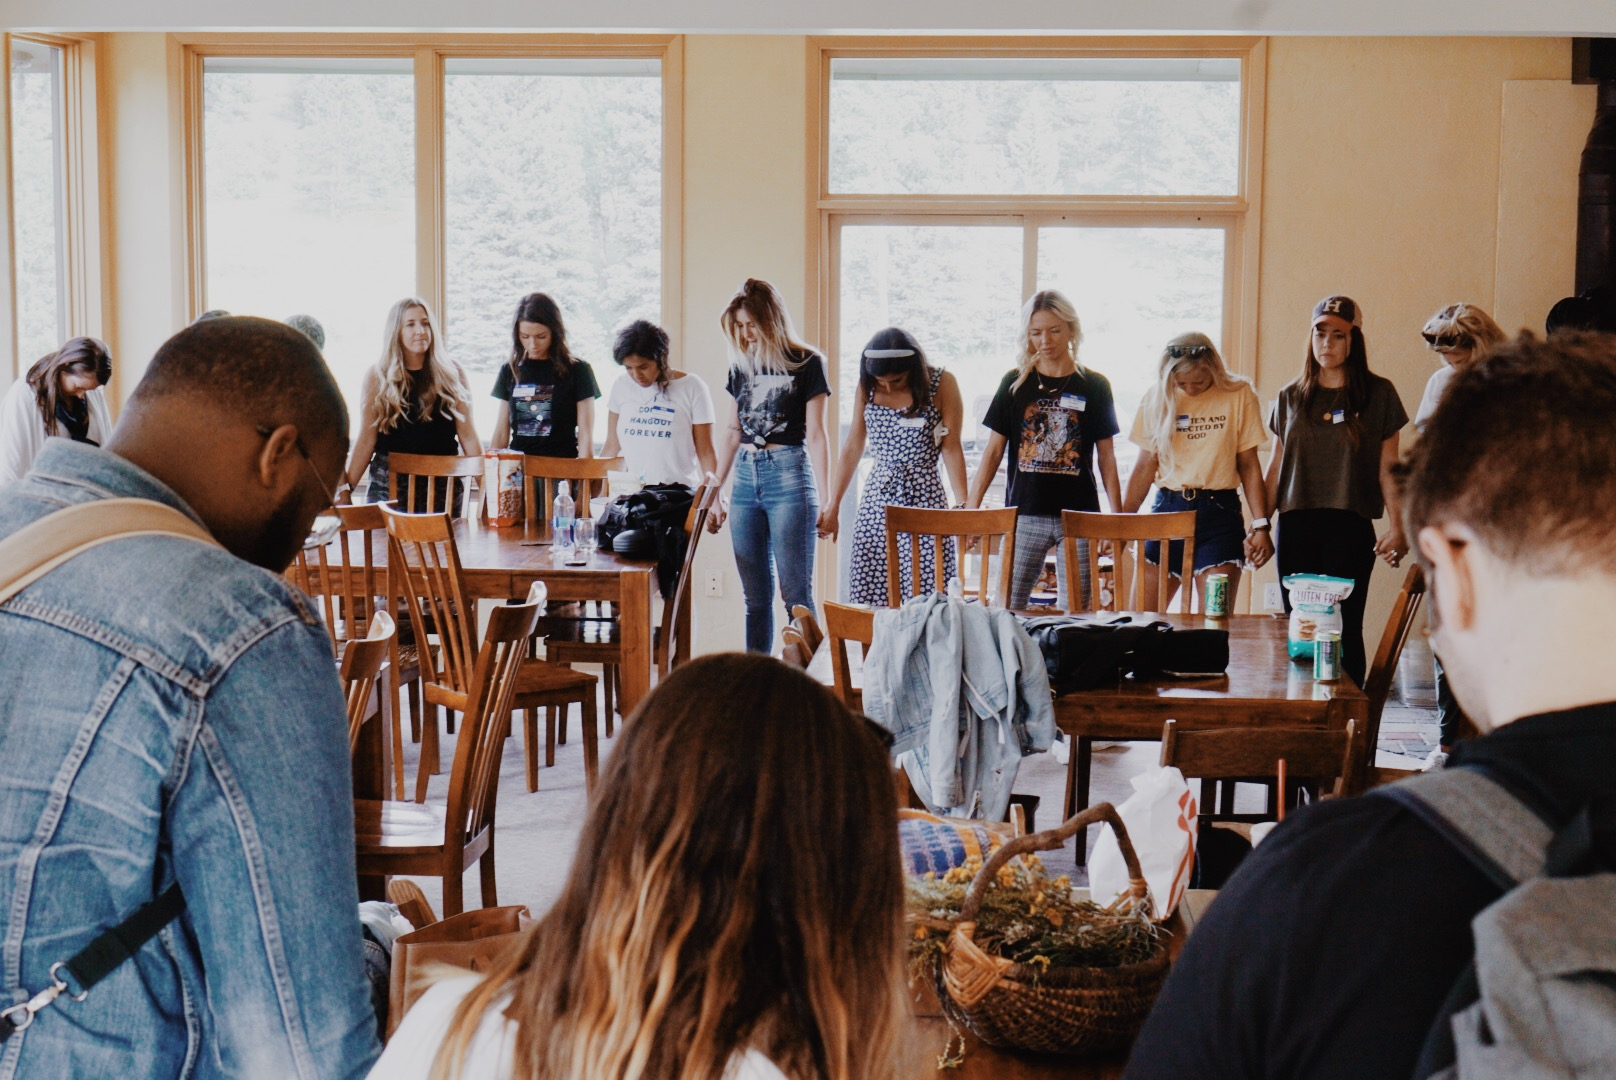 taken on the 1st day of the POWERFUL  @initiativenetwork 's women's retreat i was a part of this past weekend.